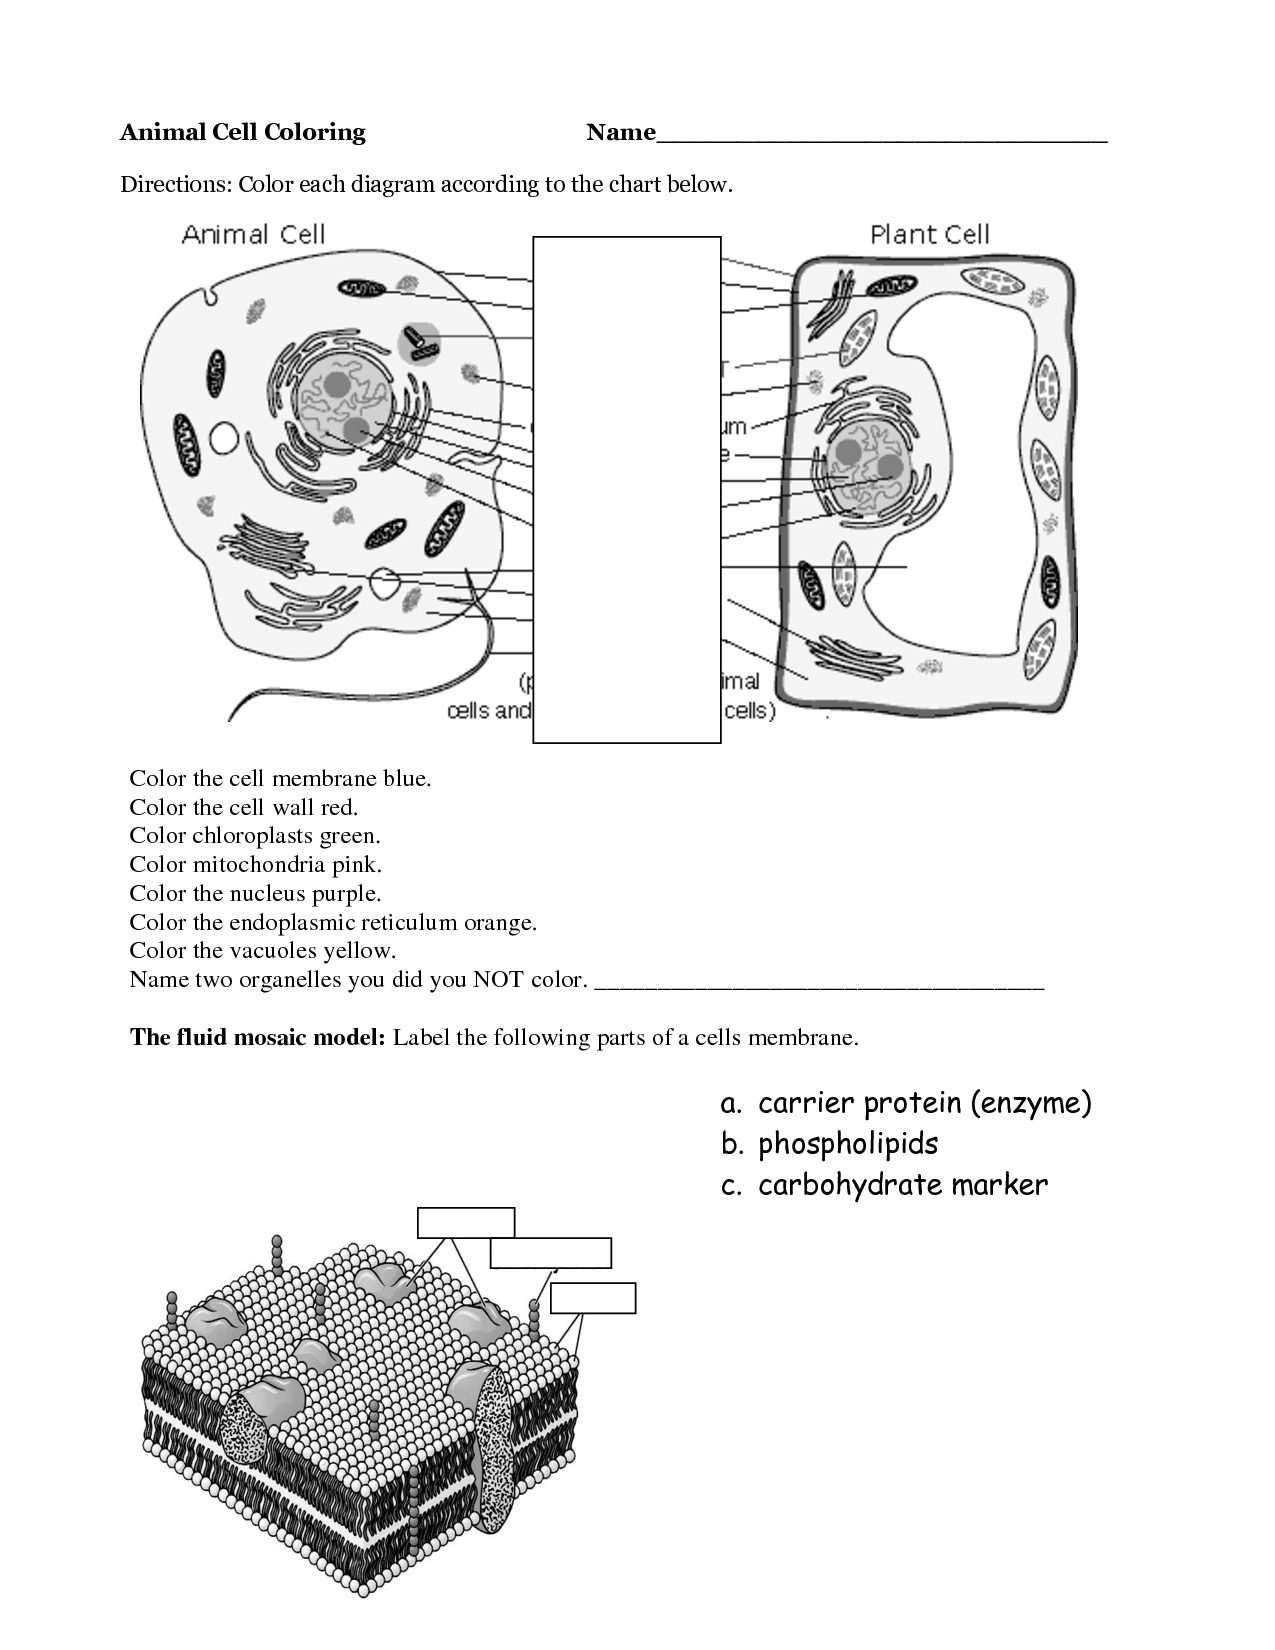 Plant cell and animal cell diagram worksheet